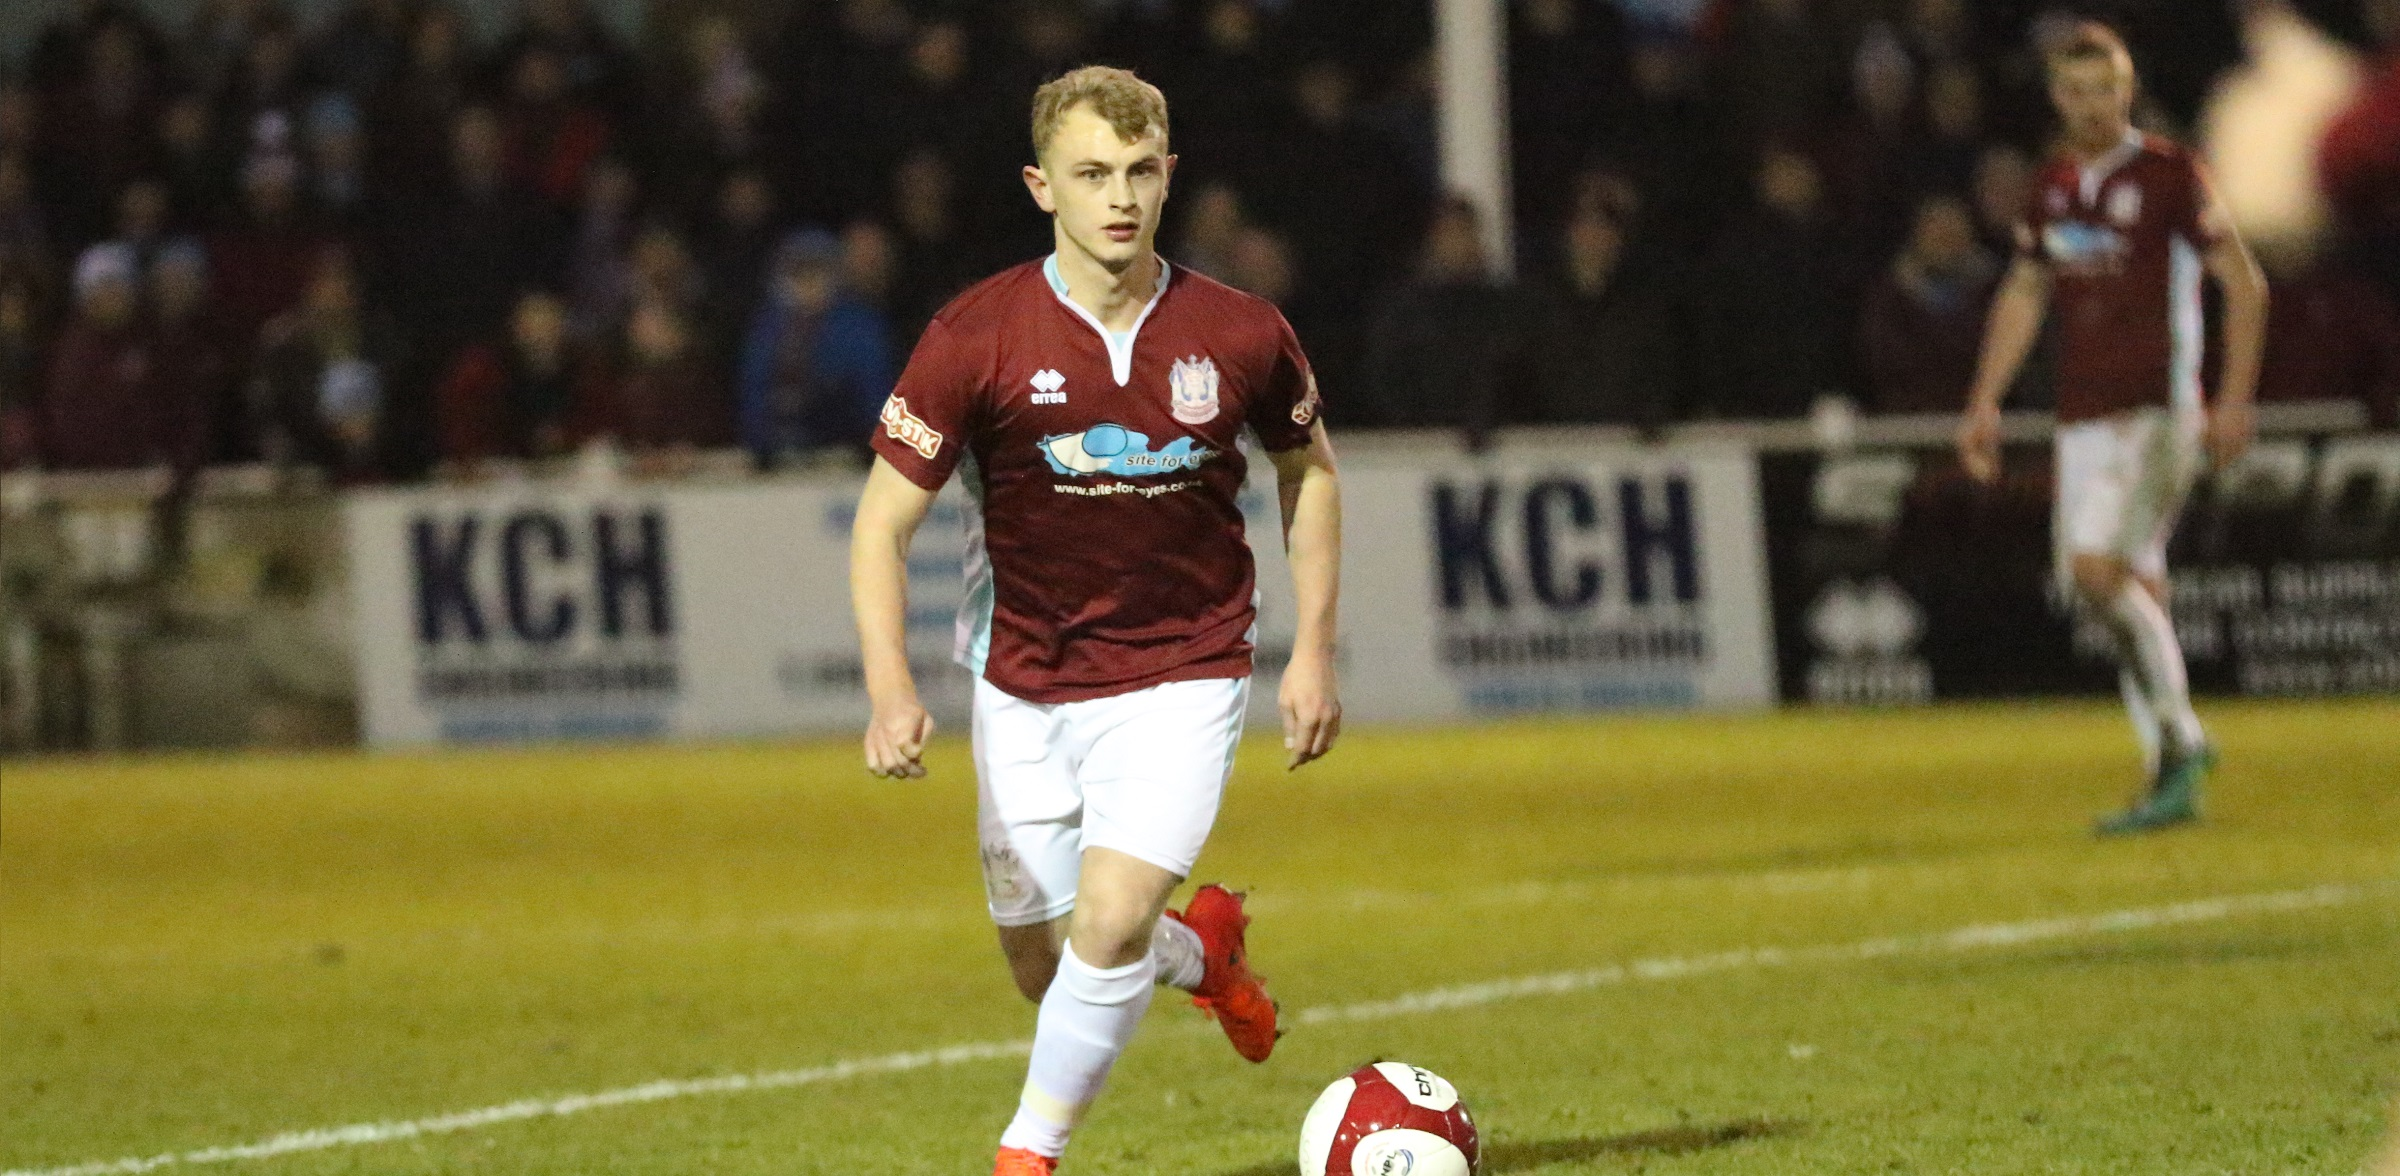 Fenton tips youngster Wright to make big impact at Shields